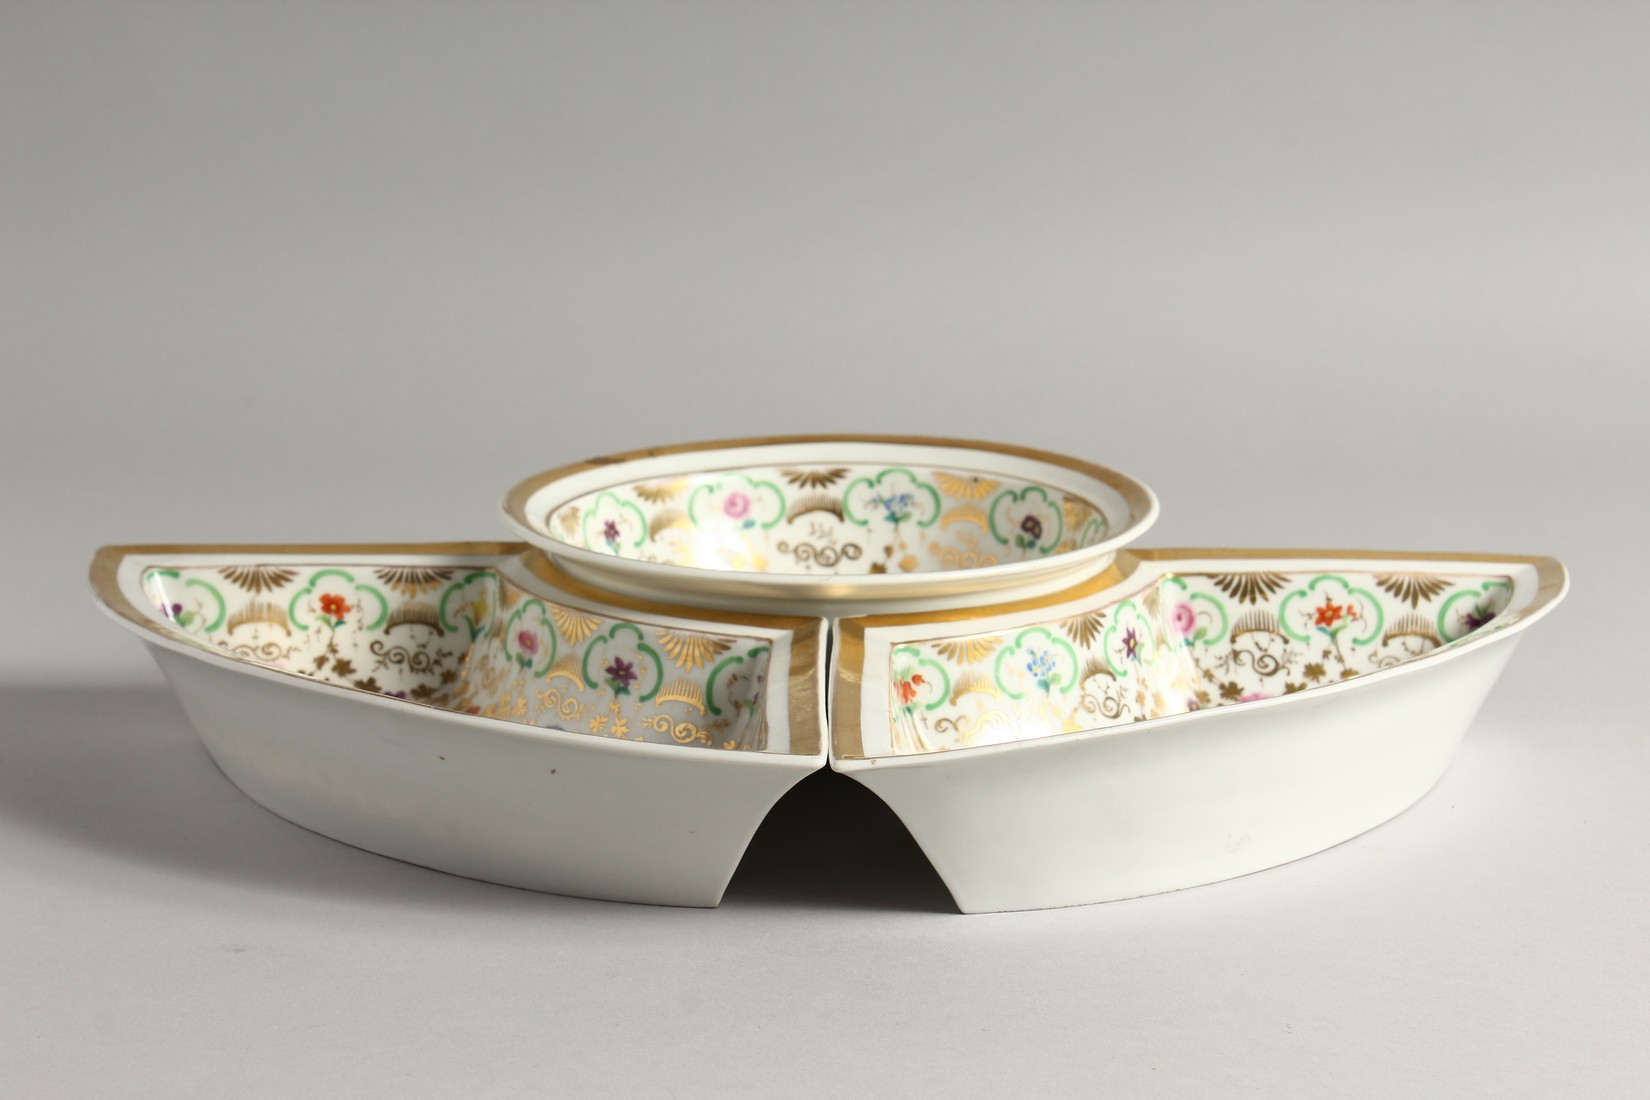 A K. P. M. PORCELAIN CIRCULAR BOWL with gilt decoration and painted with flowers. 7ins diameter - Image 2 of 9